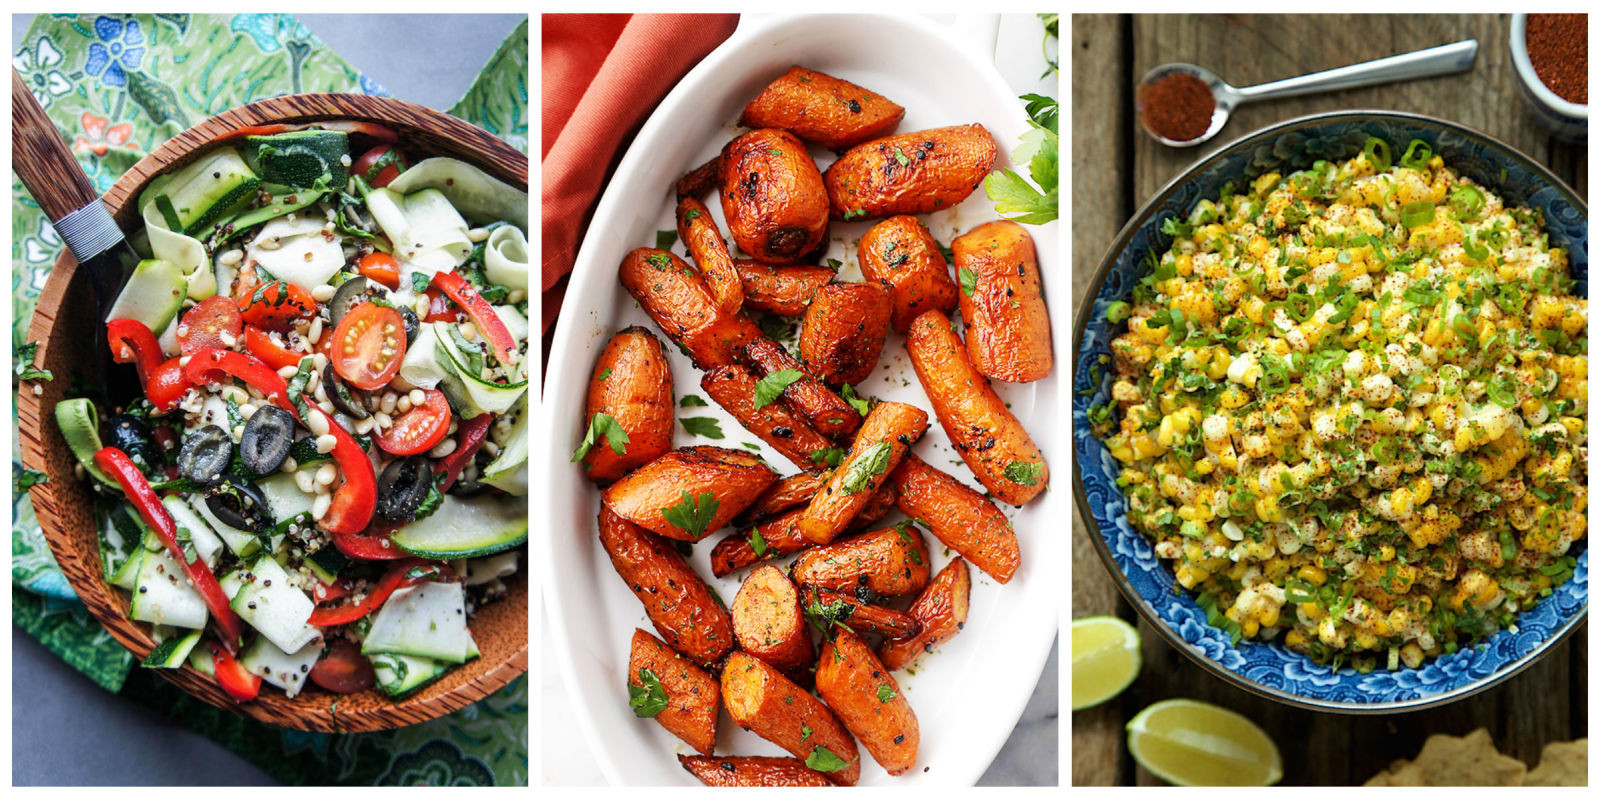 Barbecue Side Dishes  16 Best BBQ Side Dishes Nontraditional Barbecue Sides